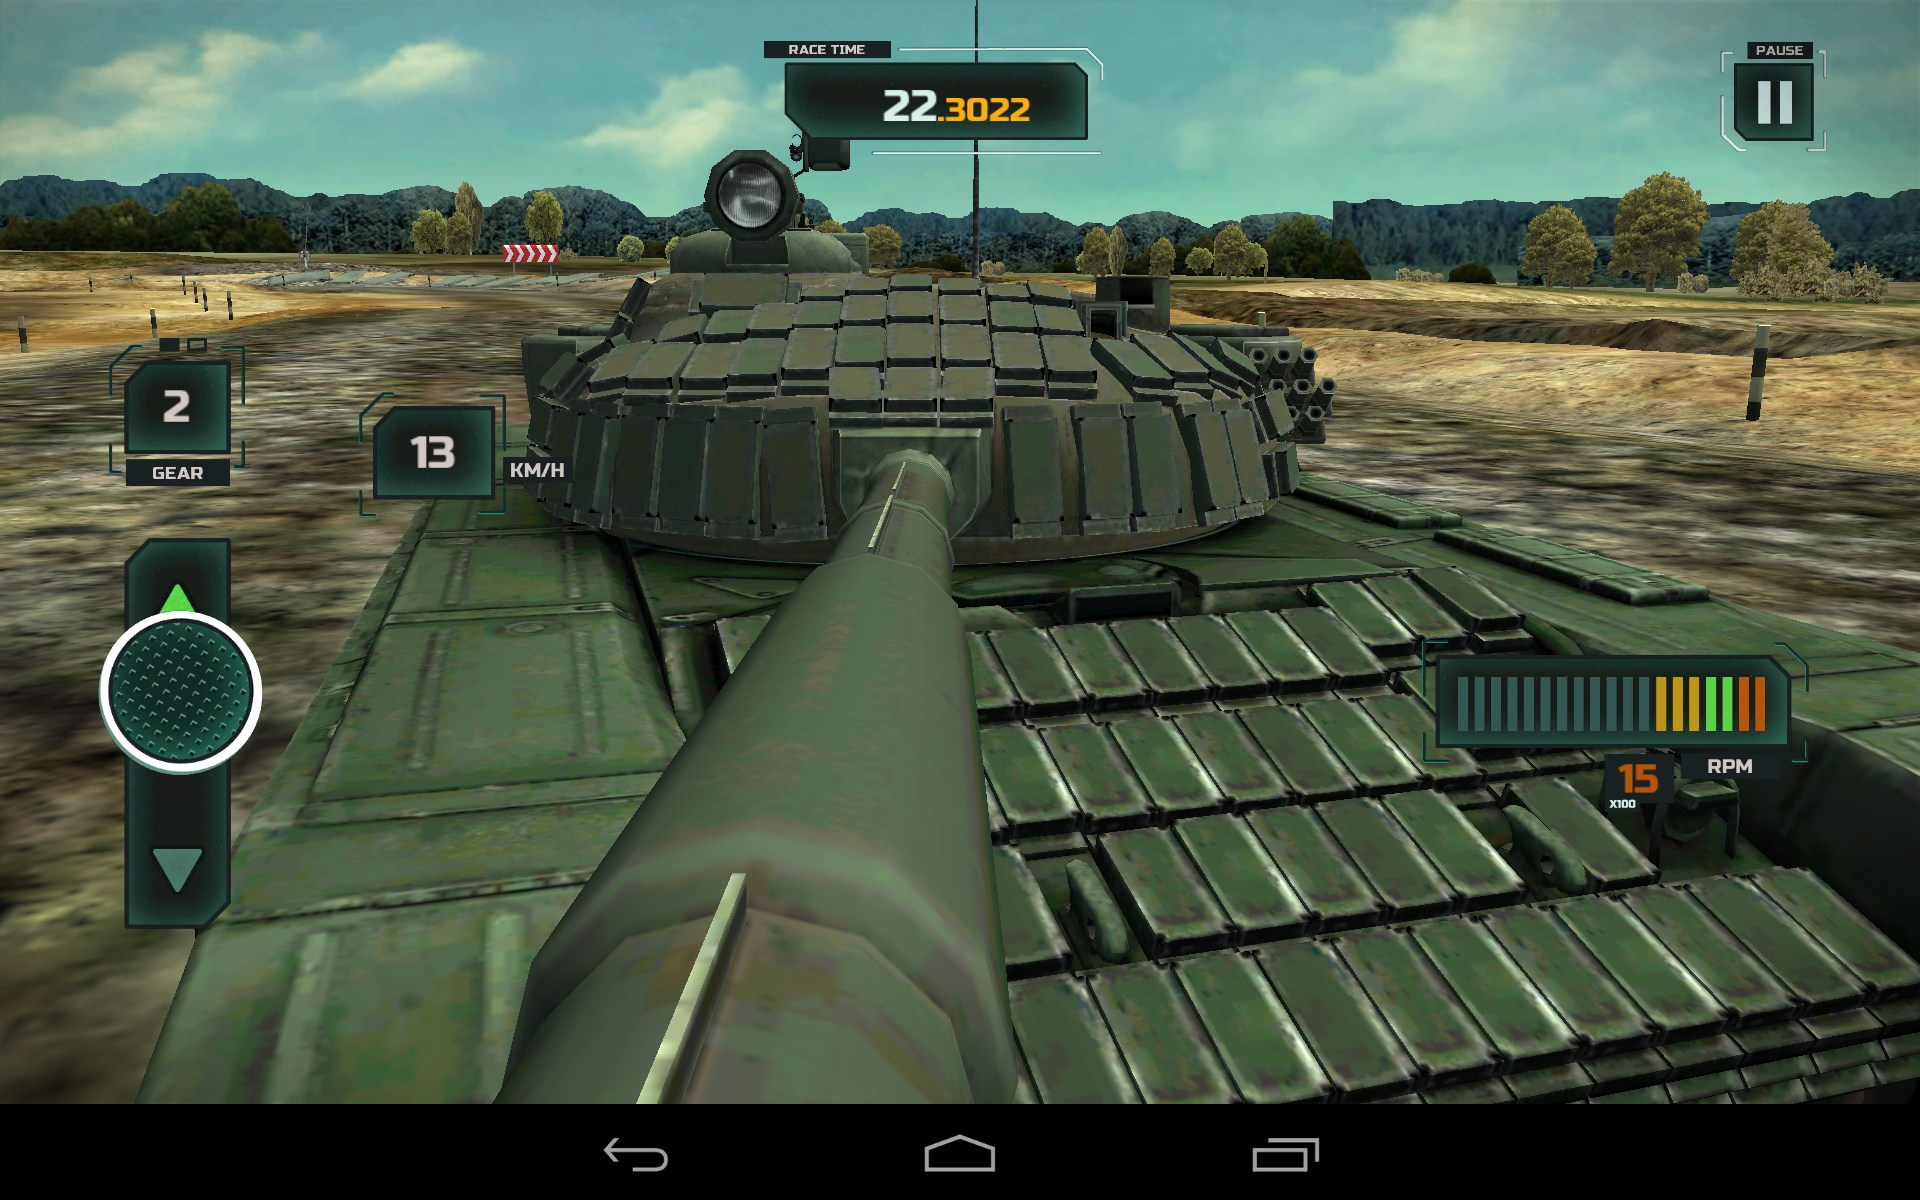 free download 3d games for android 4.0 tablet